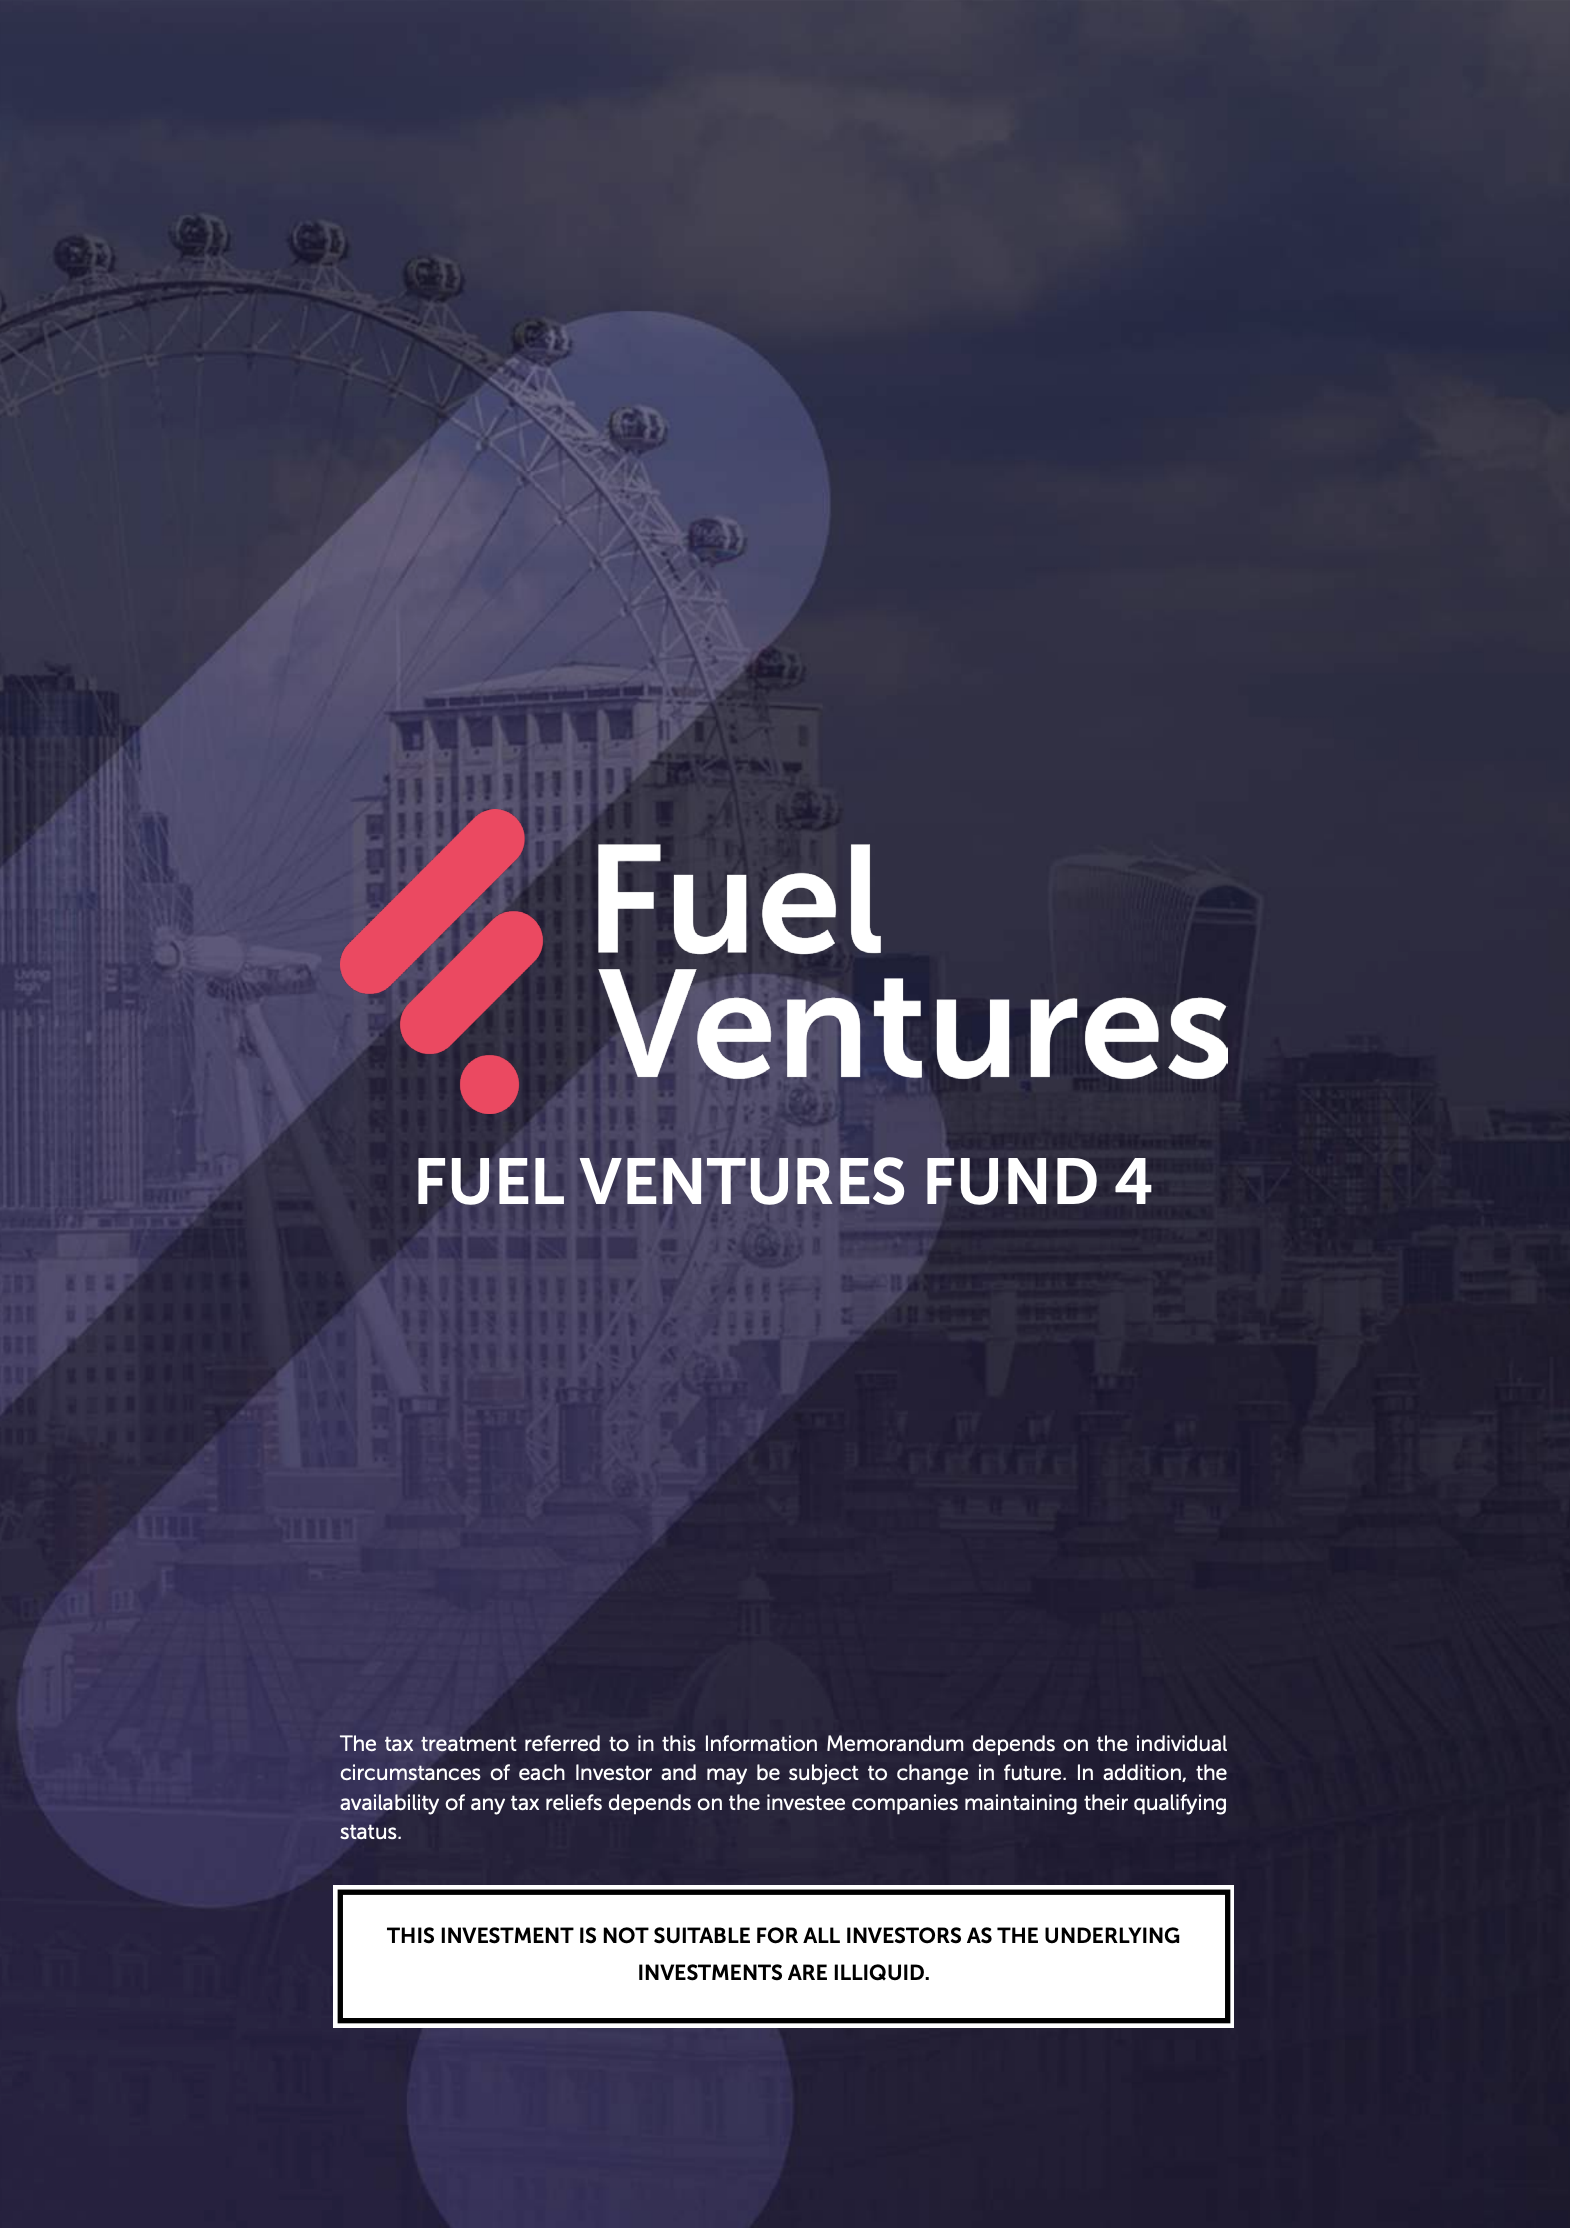 Fuel Ventures Funds